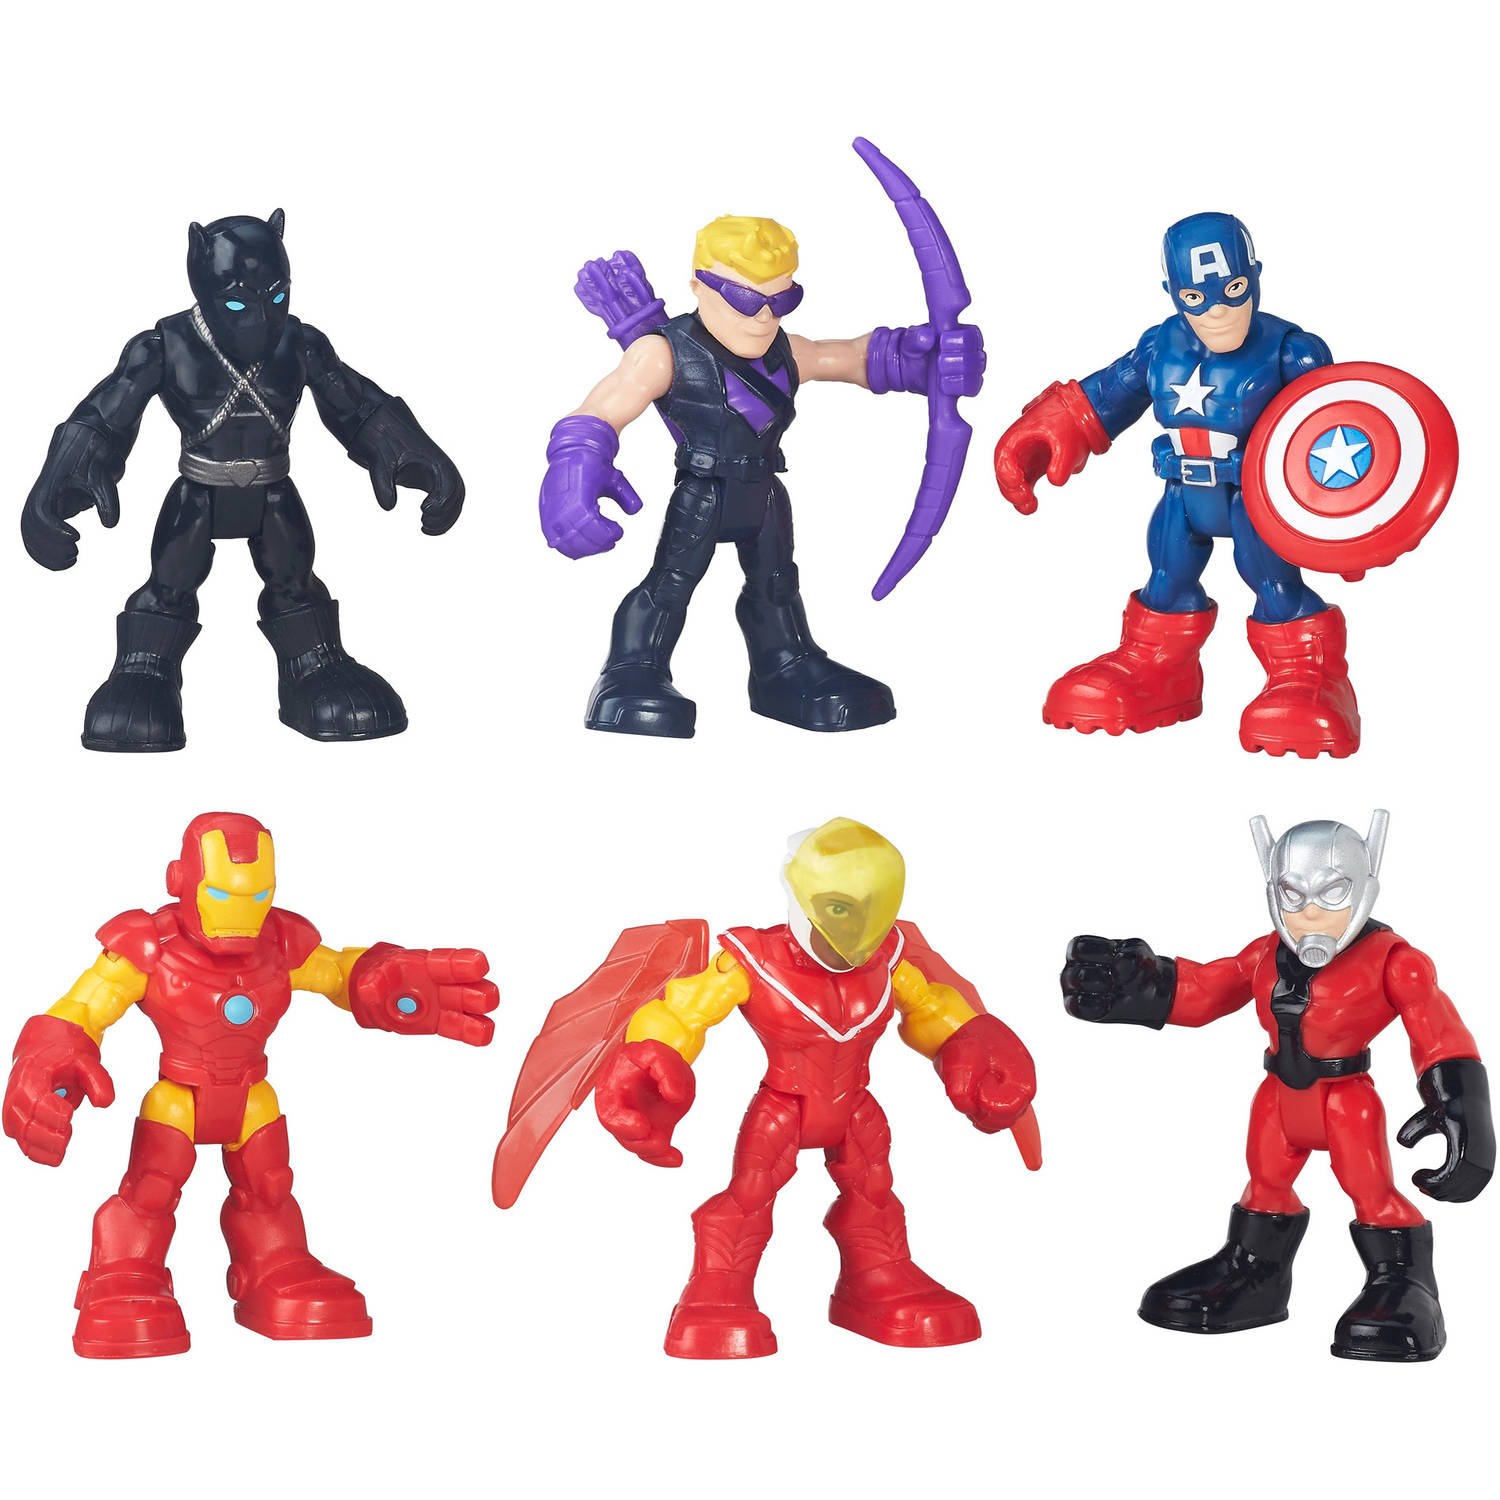 Playskool Heroes Marvel Super Hero Adventures Captain America Jungle Adventure Team B5020